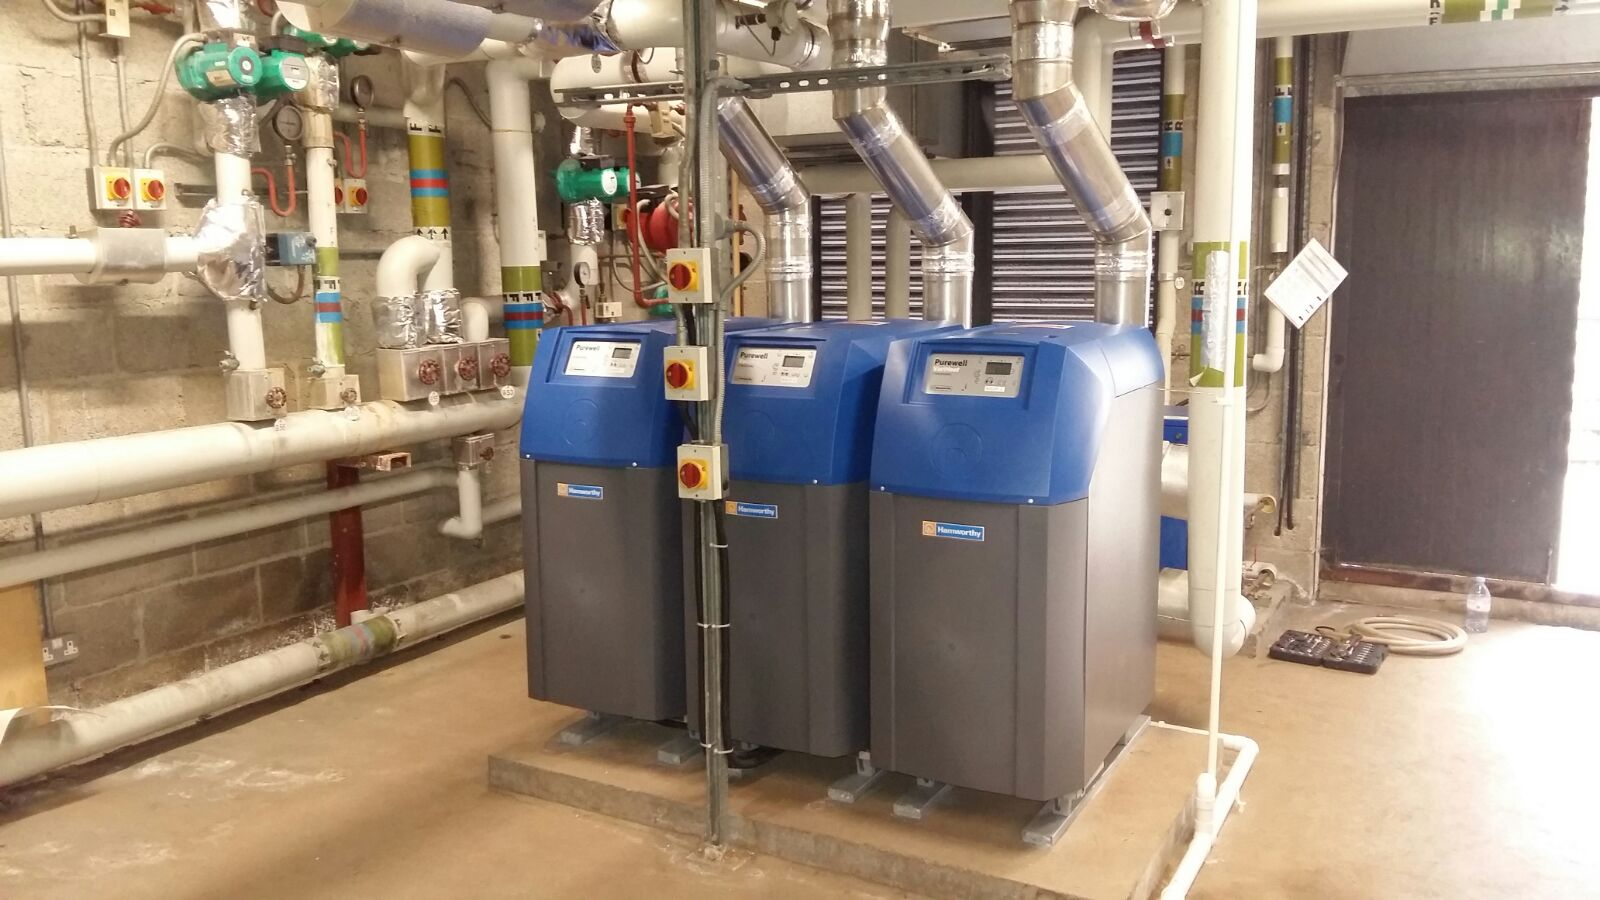 Supply and fit of three condensing boilers04